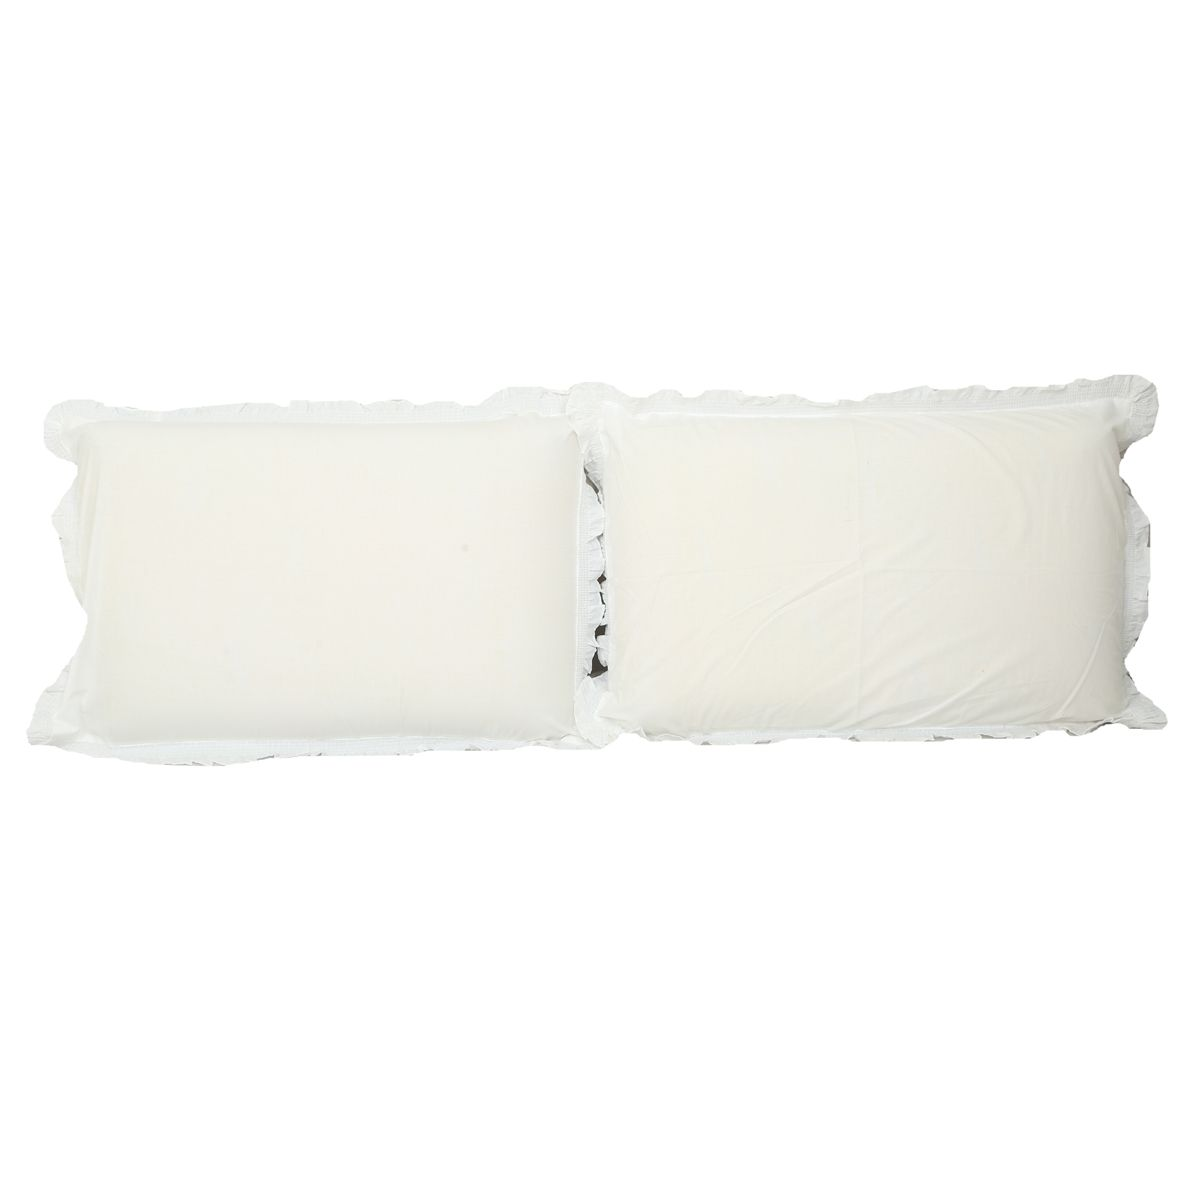 "Kuber Industriesâ""¢ Solid Plain Premium Cotton Pillow Cover with Frill Flange,Set of 2 - White - KU76"